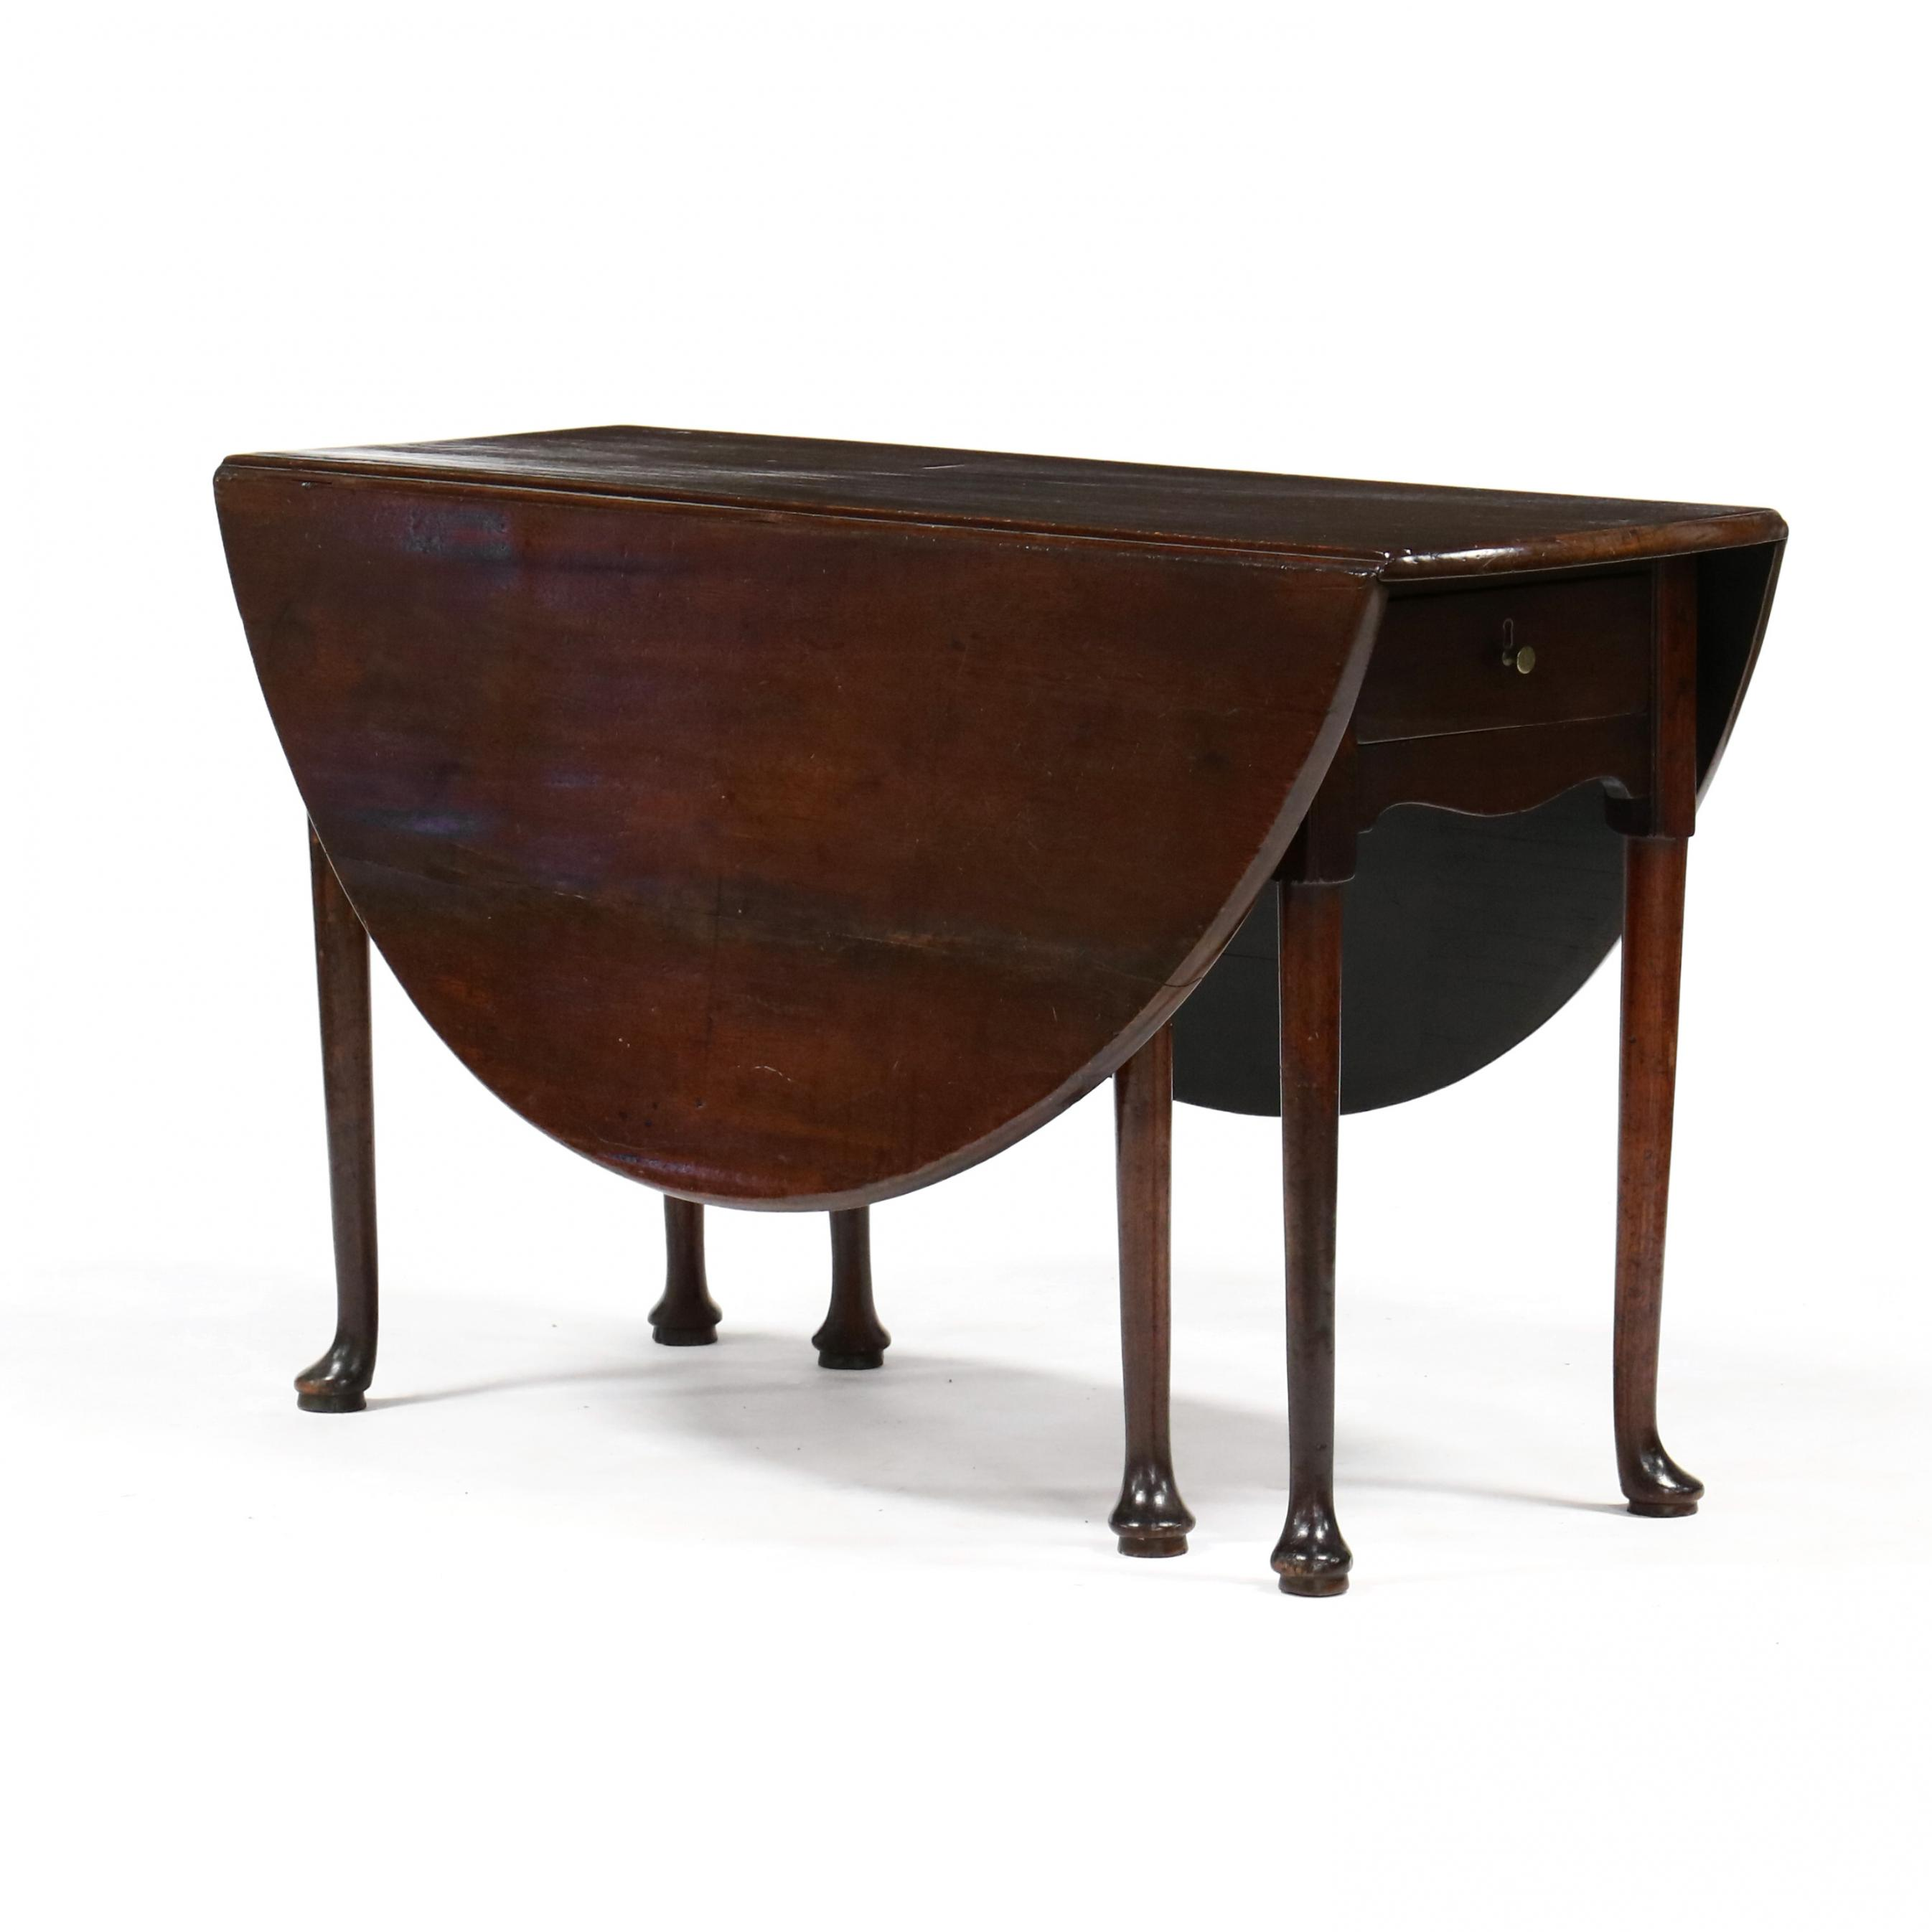 southern-queen-anne-mahogany-drop-leaf-dining-table